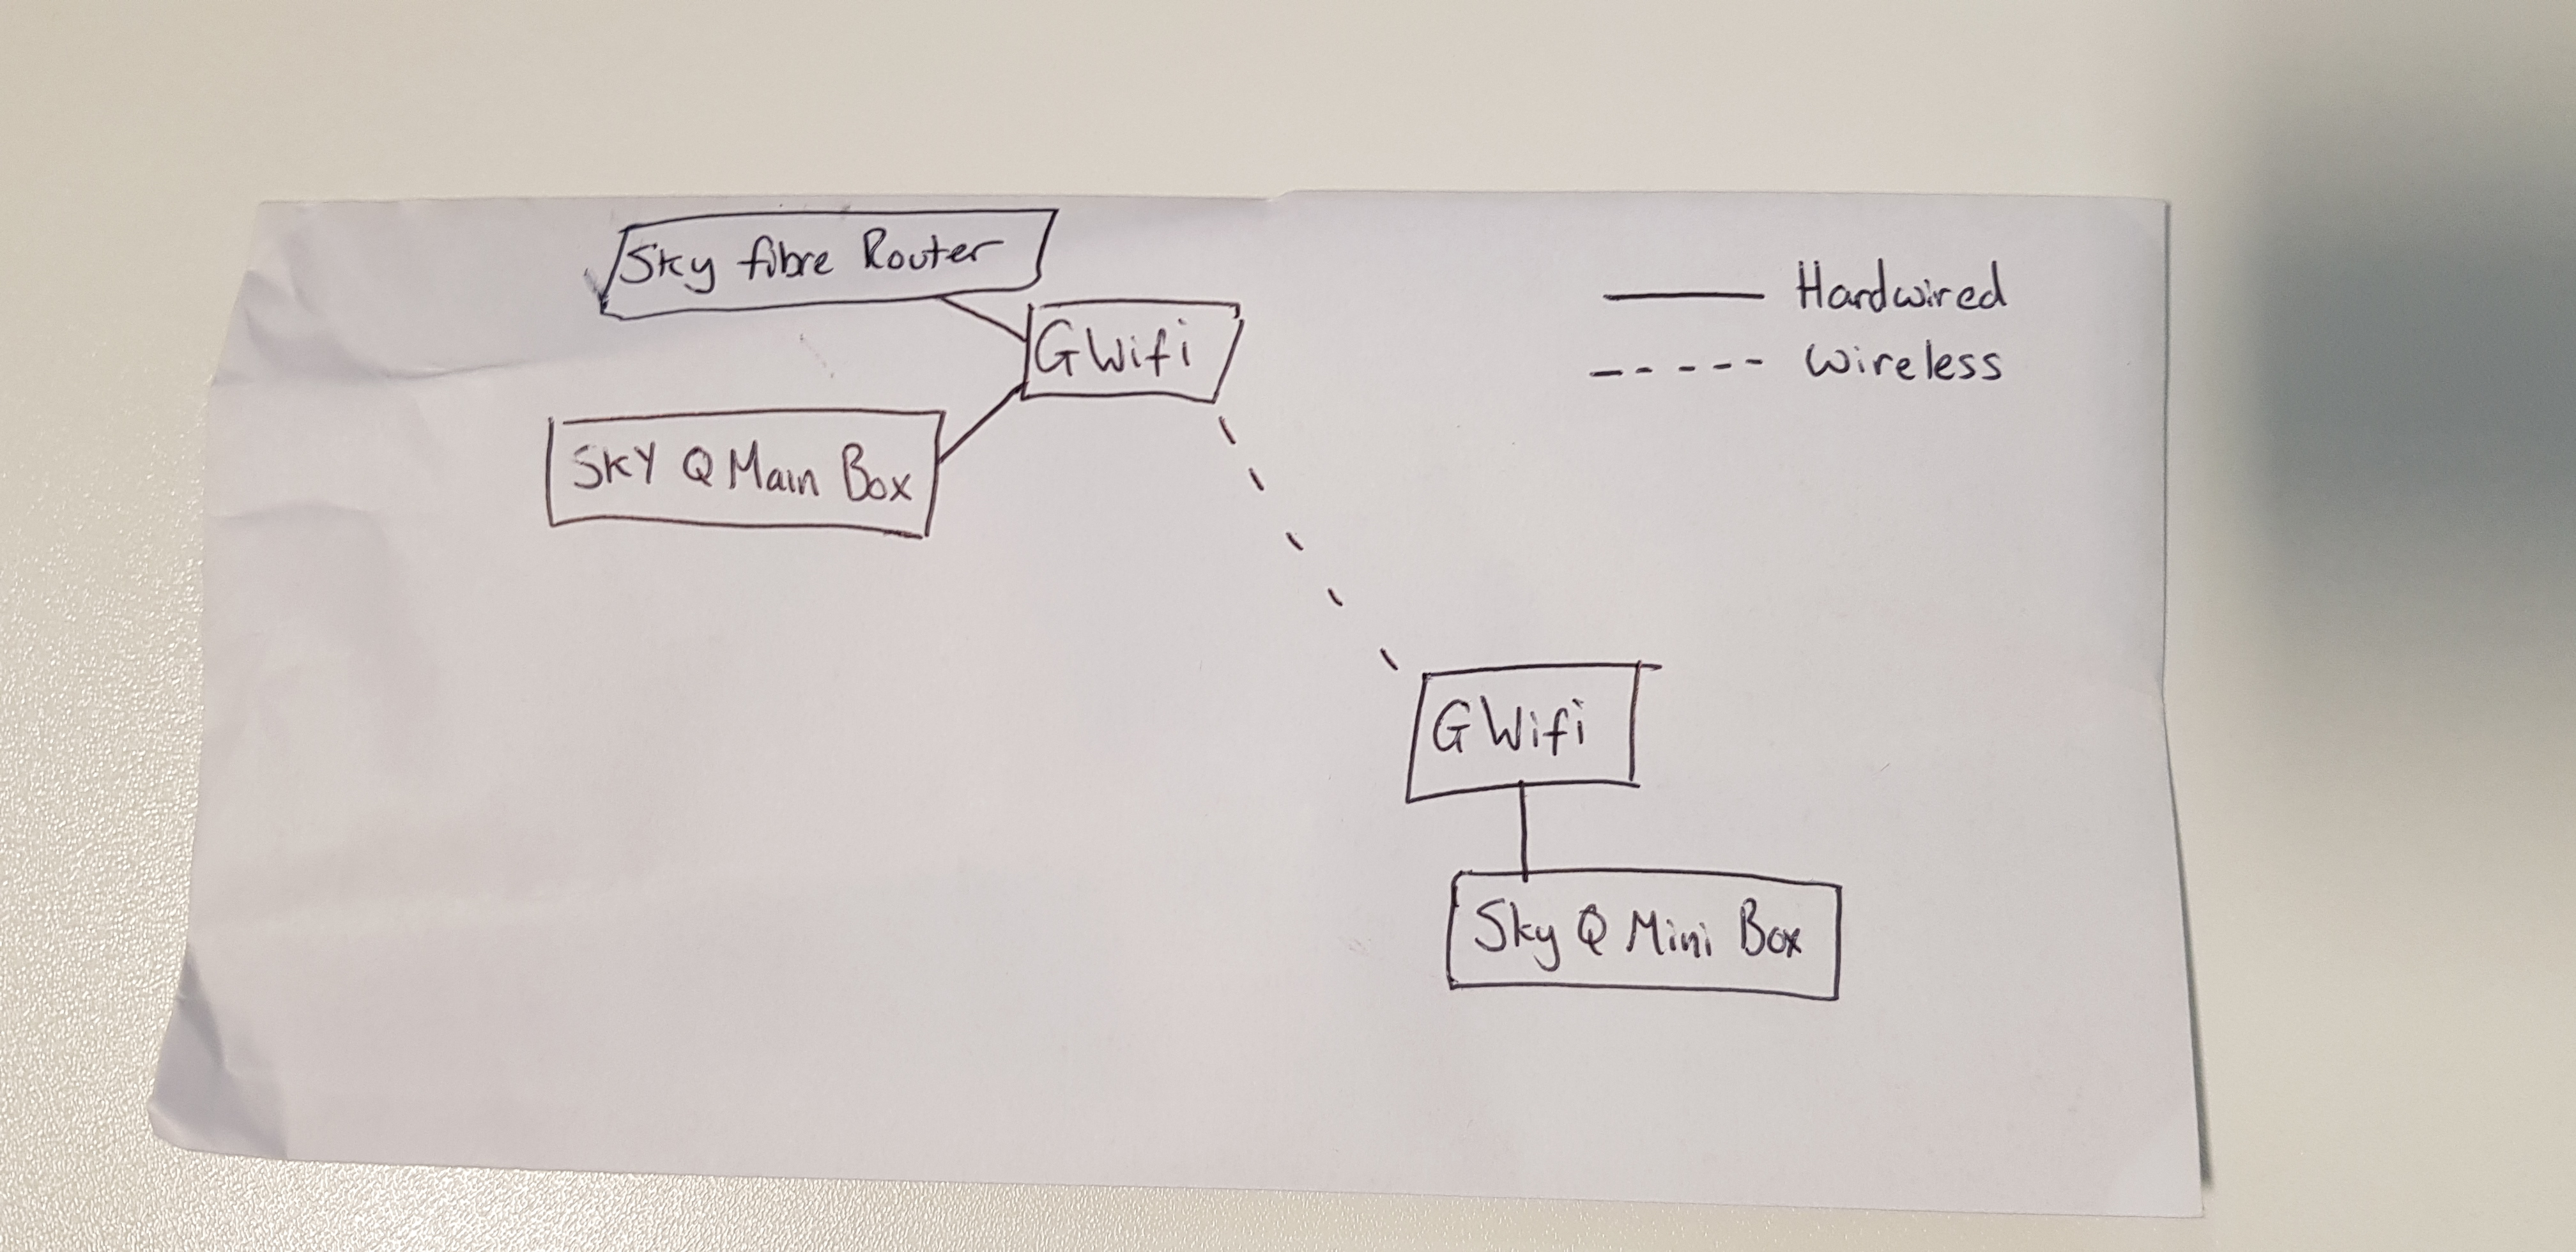 Sky Router Wiring Diagram | Wiring Diagram